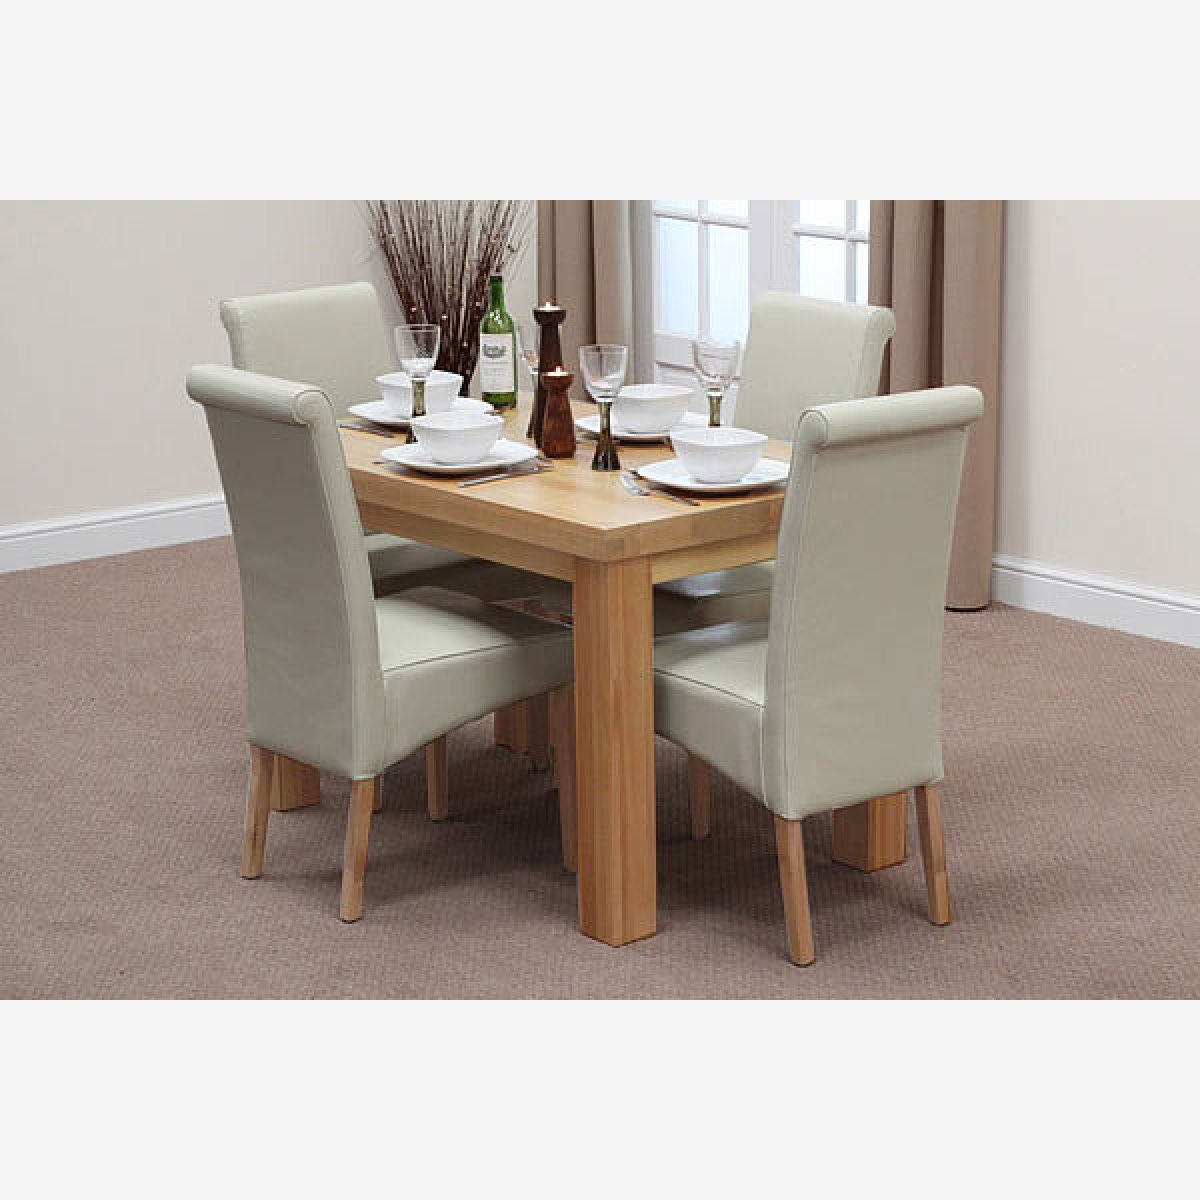 Fresco 4ft solid oak dining table 4 cream leather scroll for Oak dining room chairs